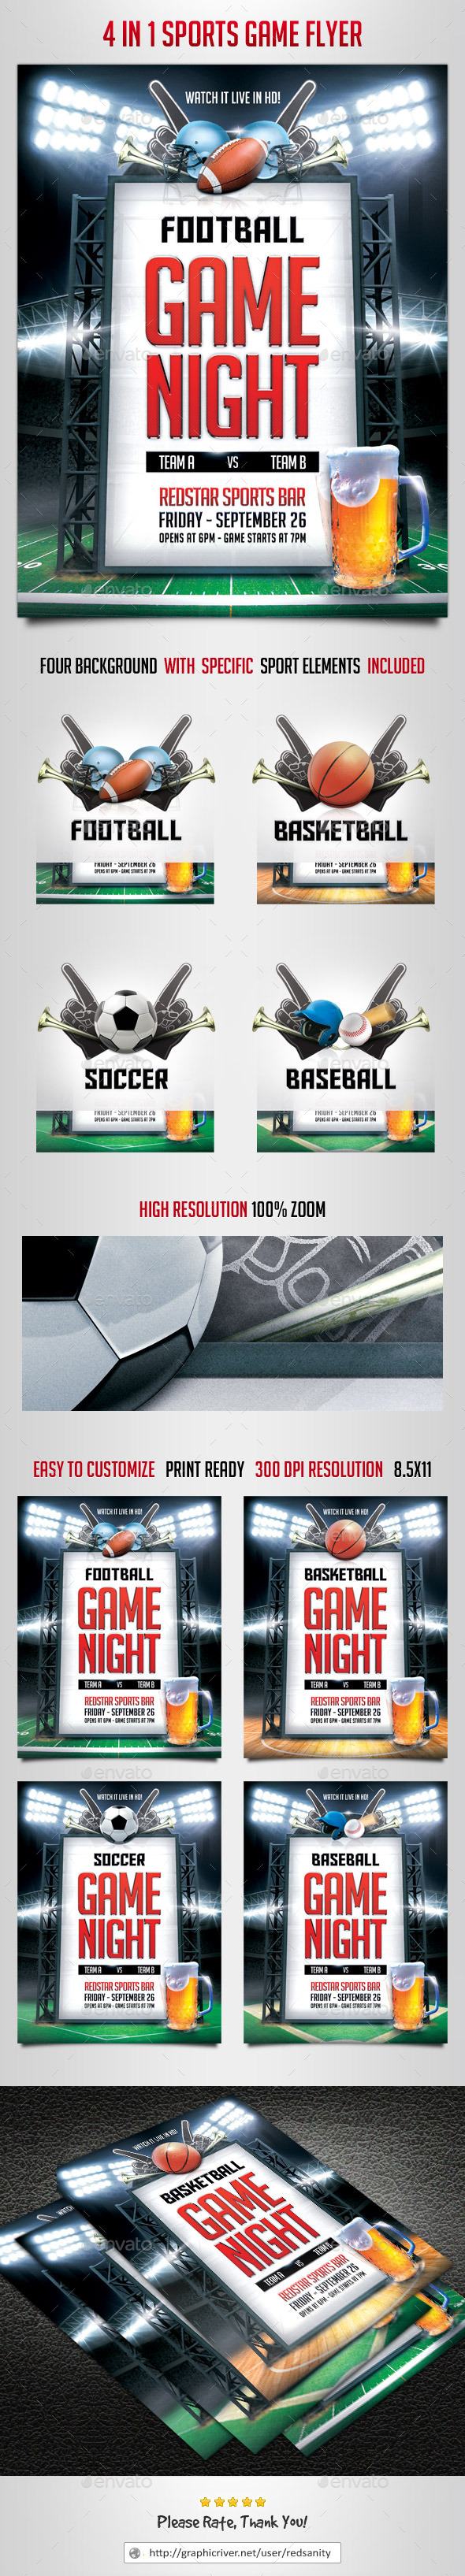 GraphicRiver 4 in 1 Sports Game Flyer 8907617